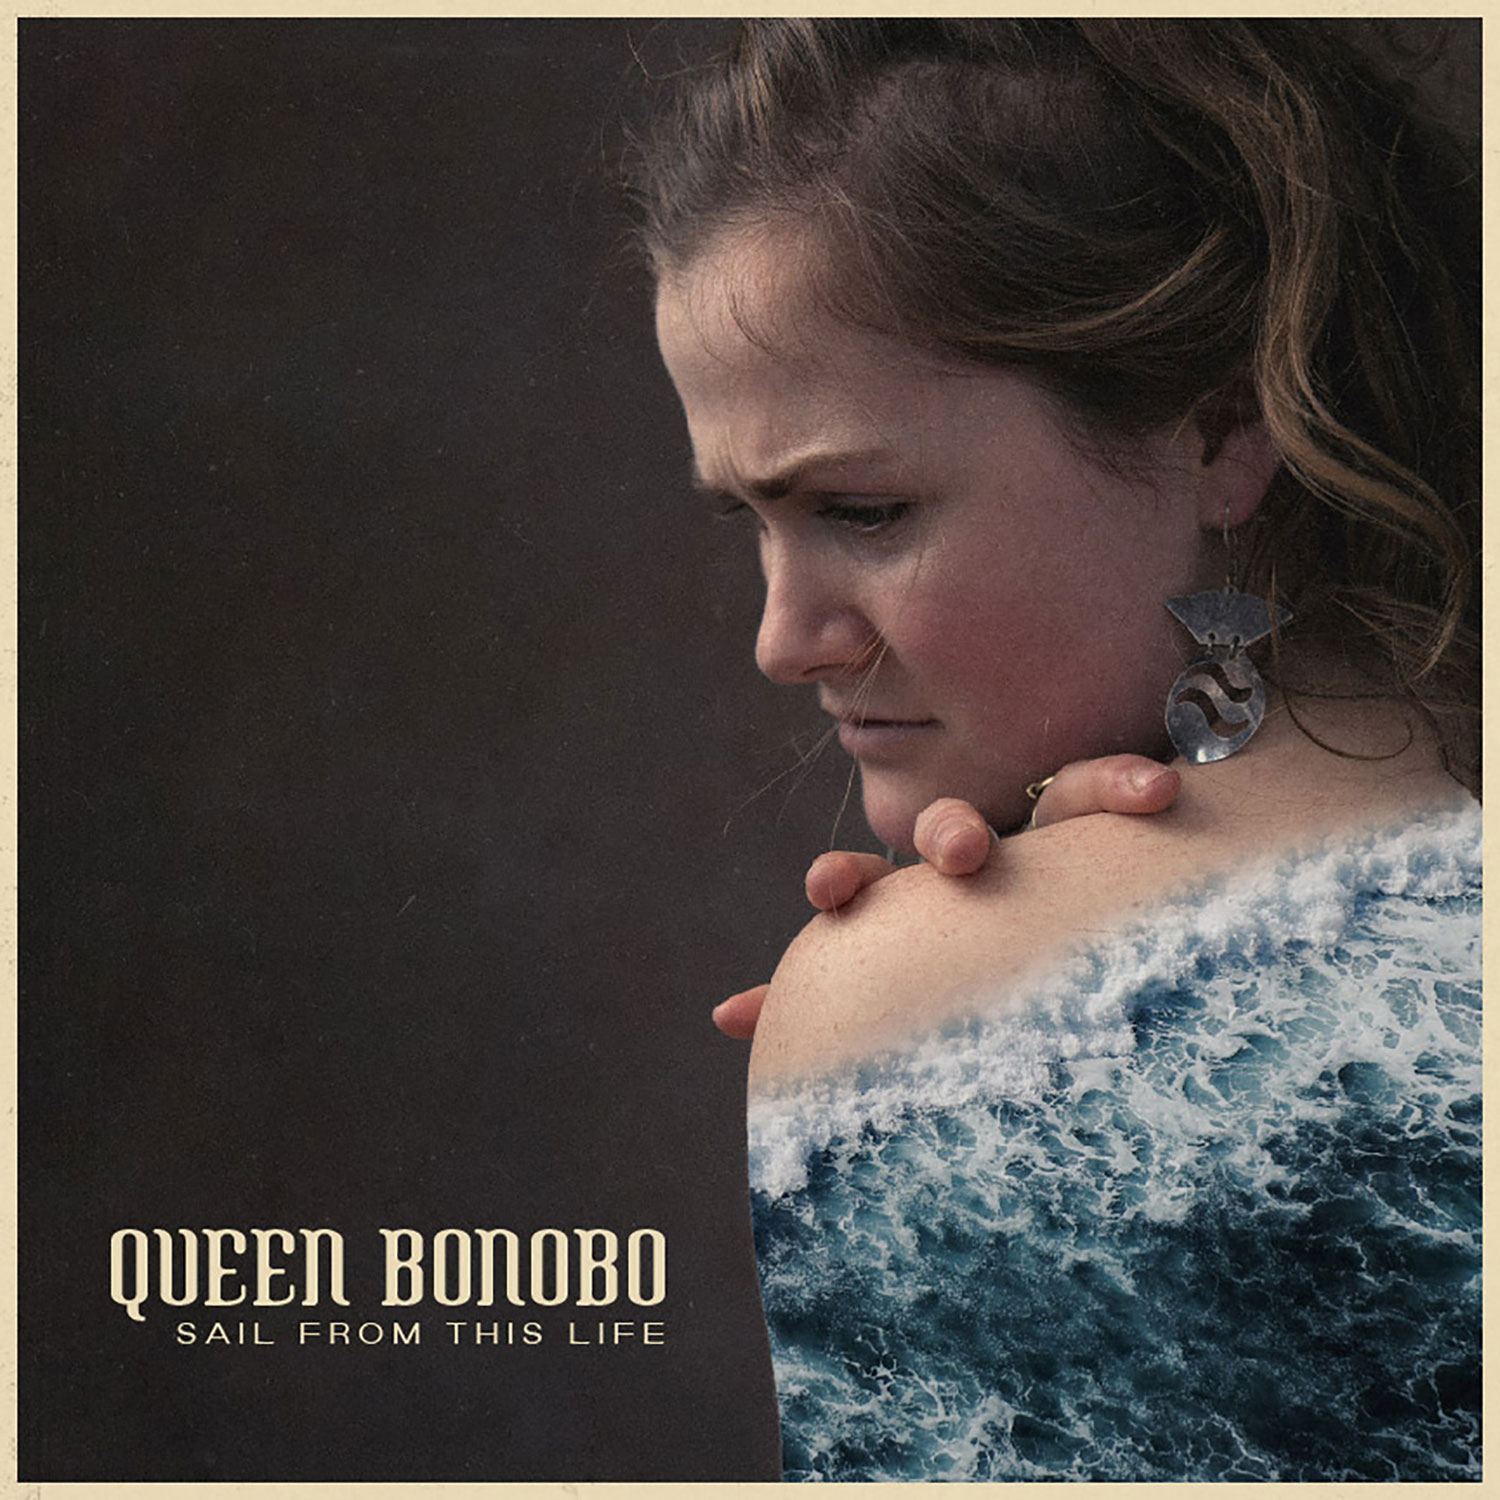 Queen Bonobo – Sail From This Life